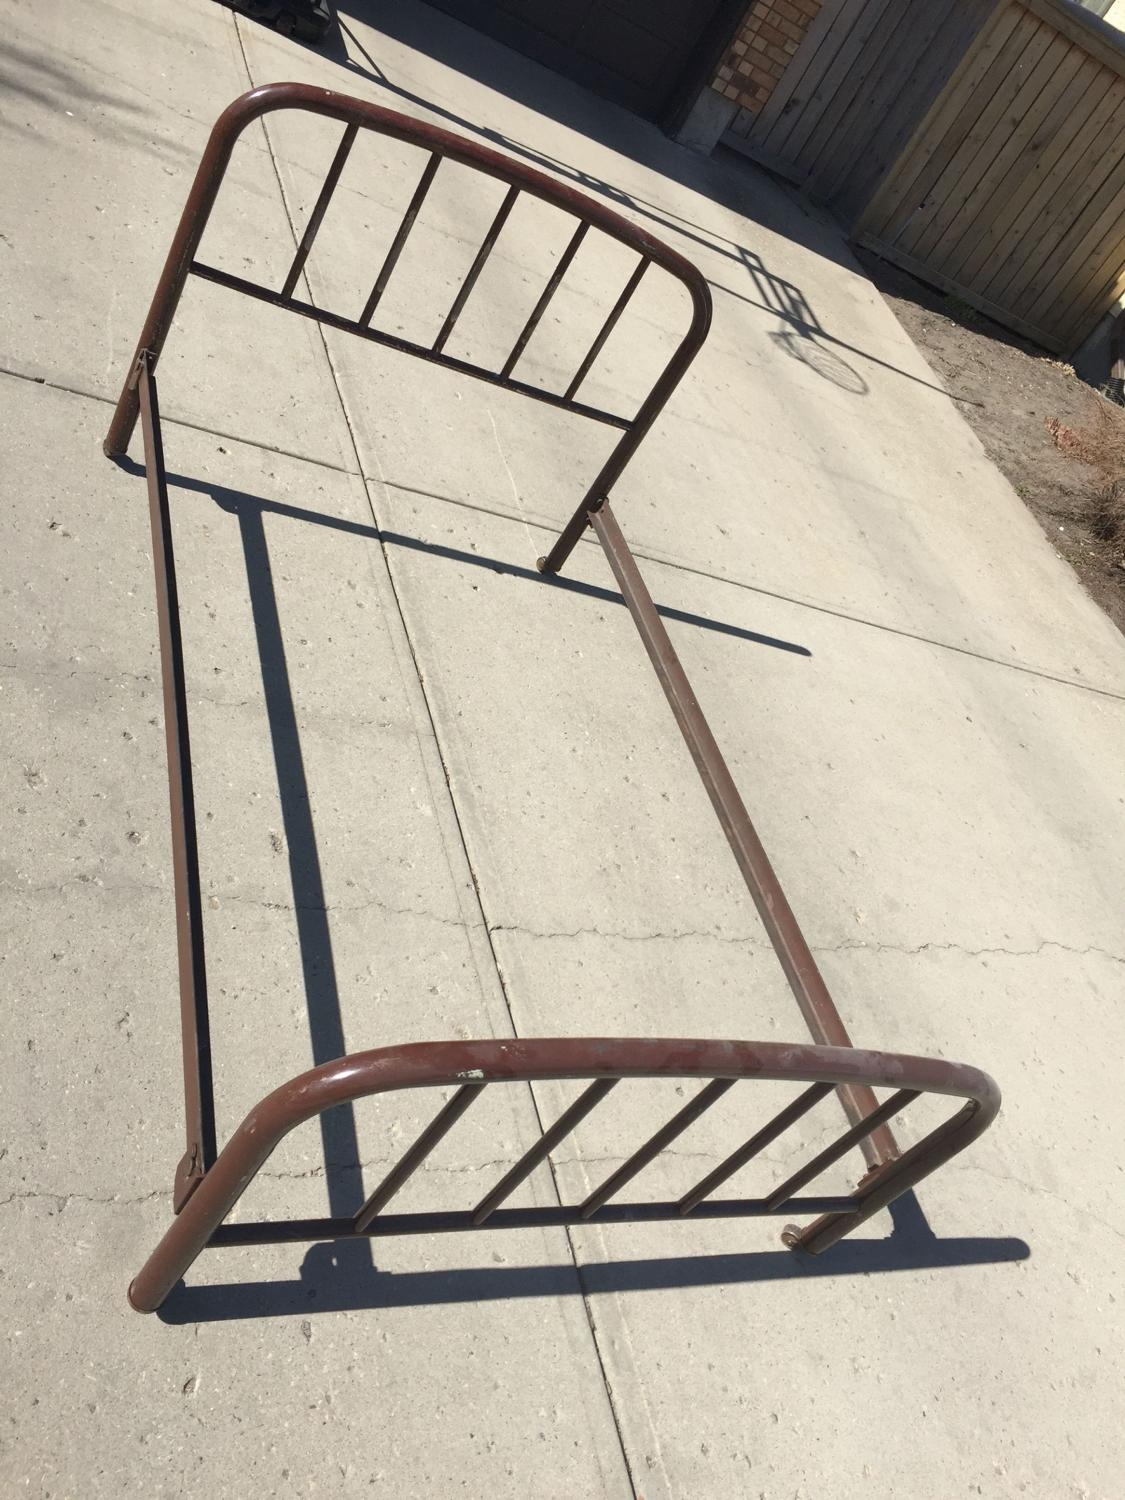 Find More Vintage Antique Metal Simmons Bed Frame For Sale At Up